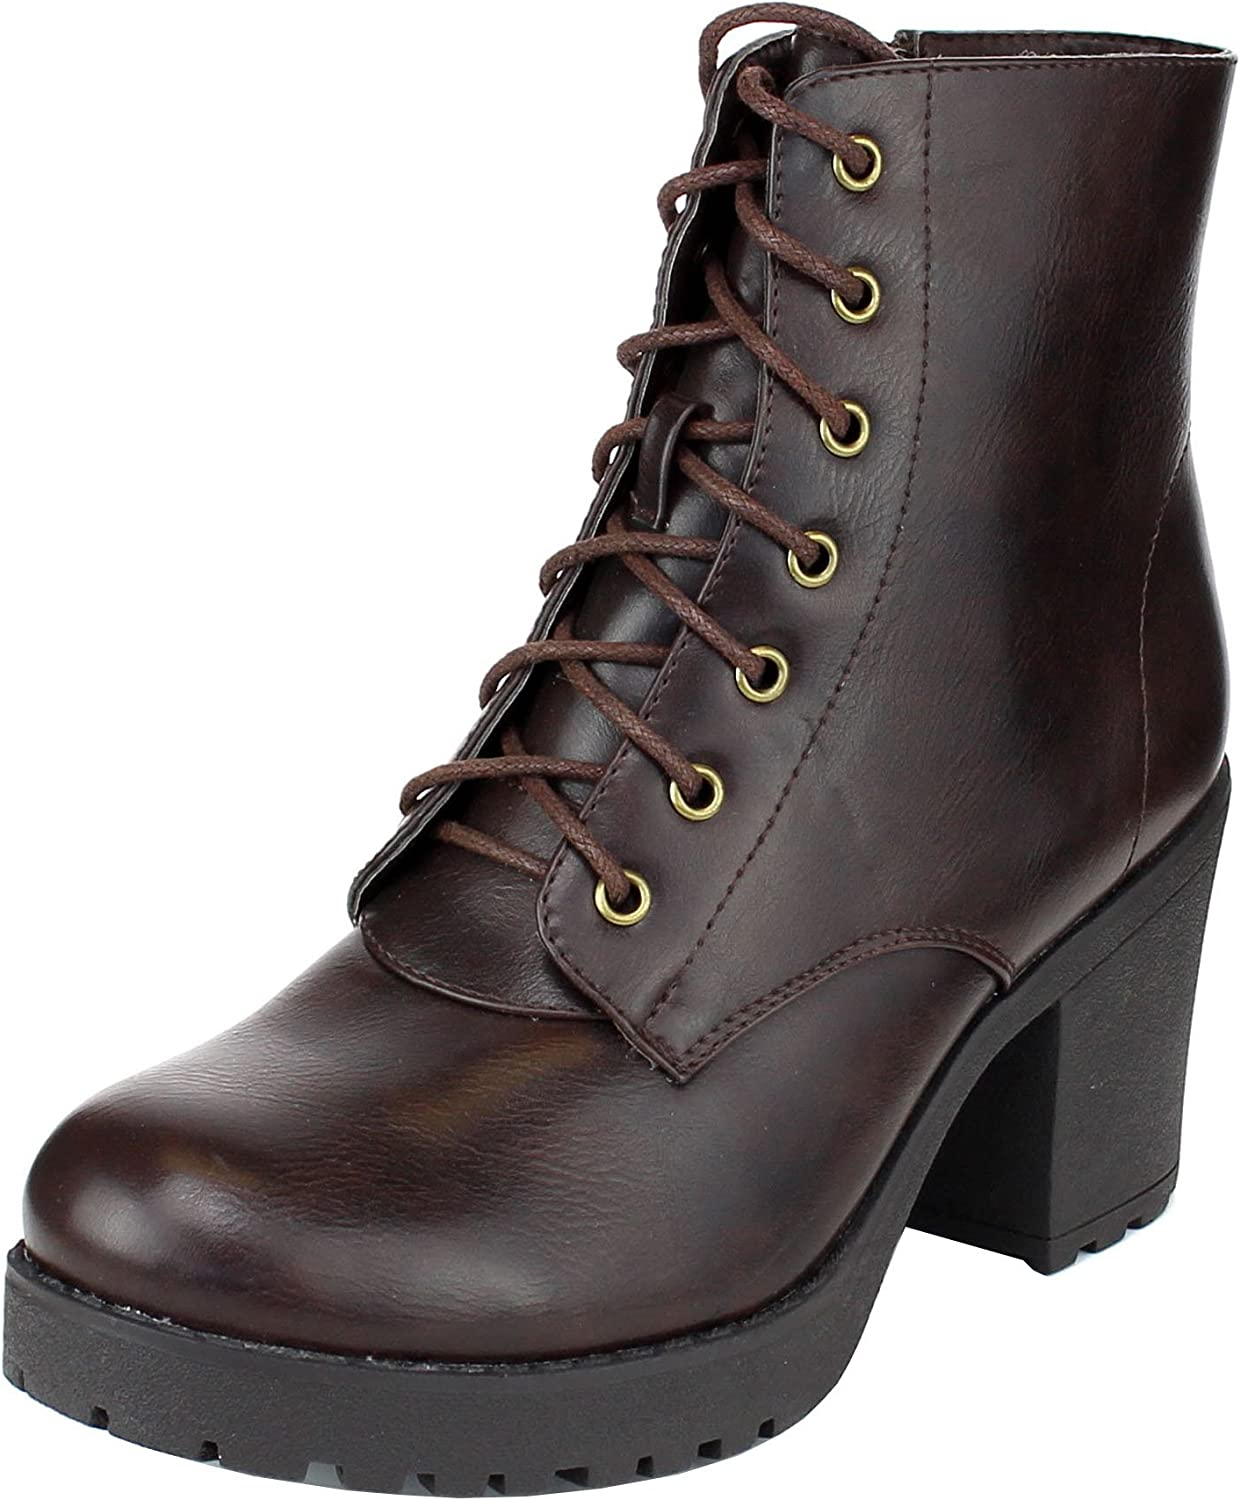 Refresh Footwear Women's Lace-up Combat Chunky Stacked Heel Ankle Bootie